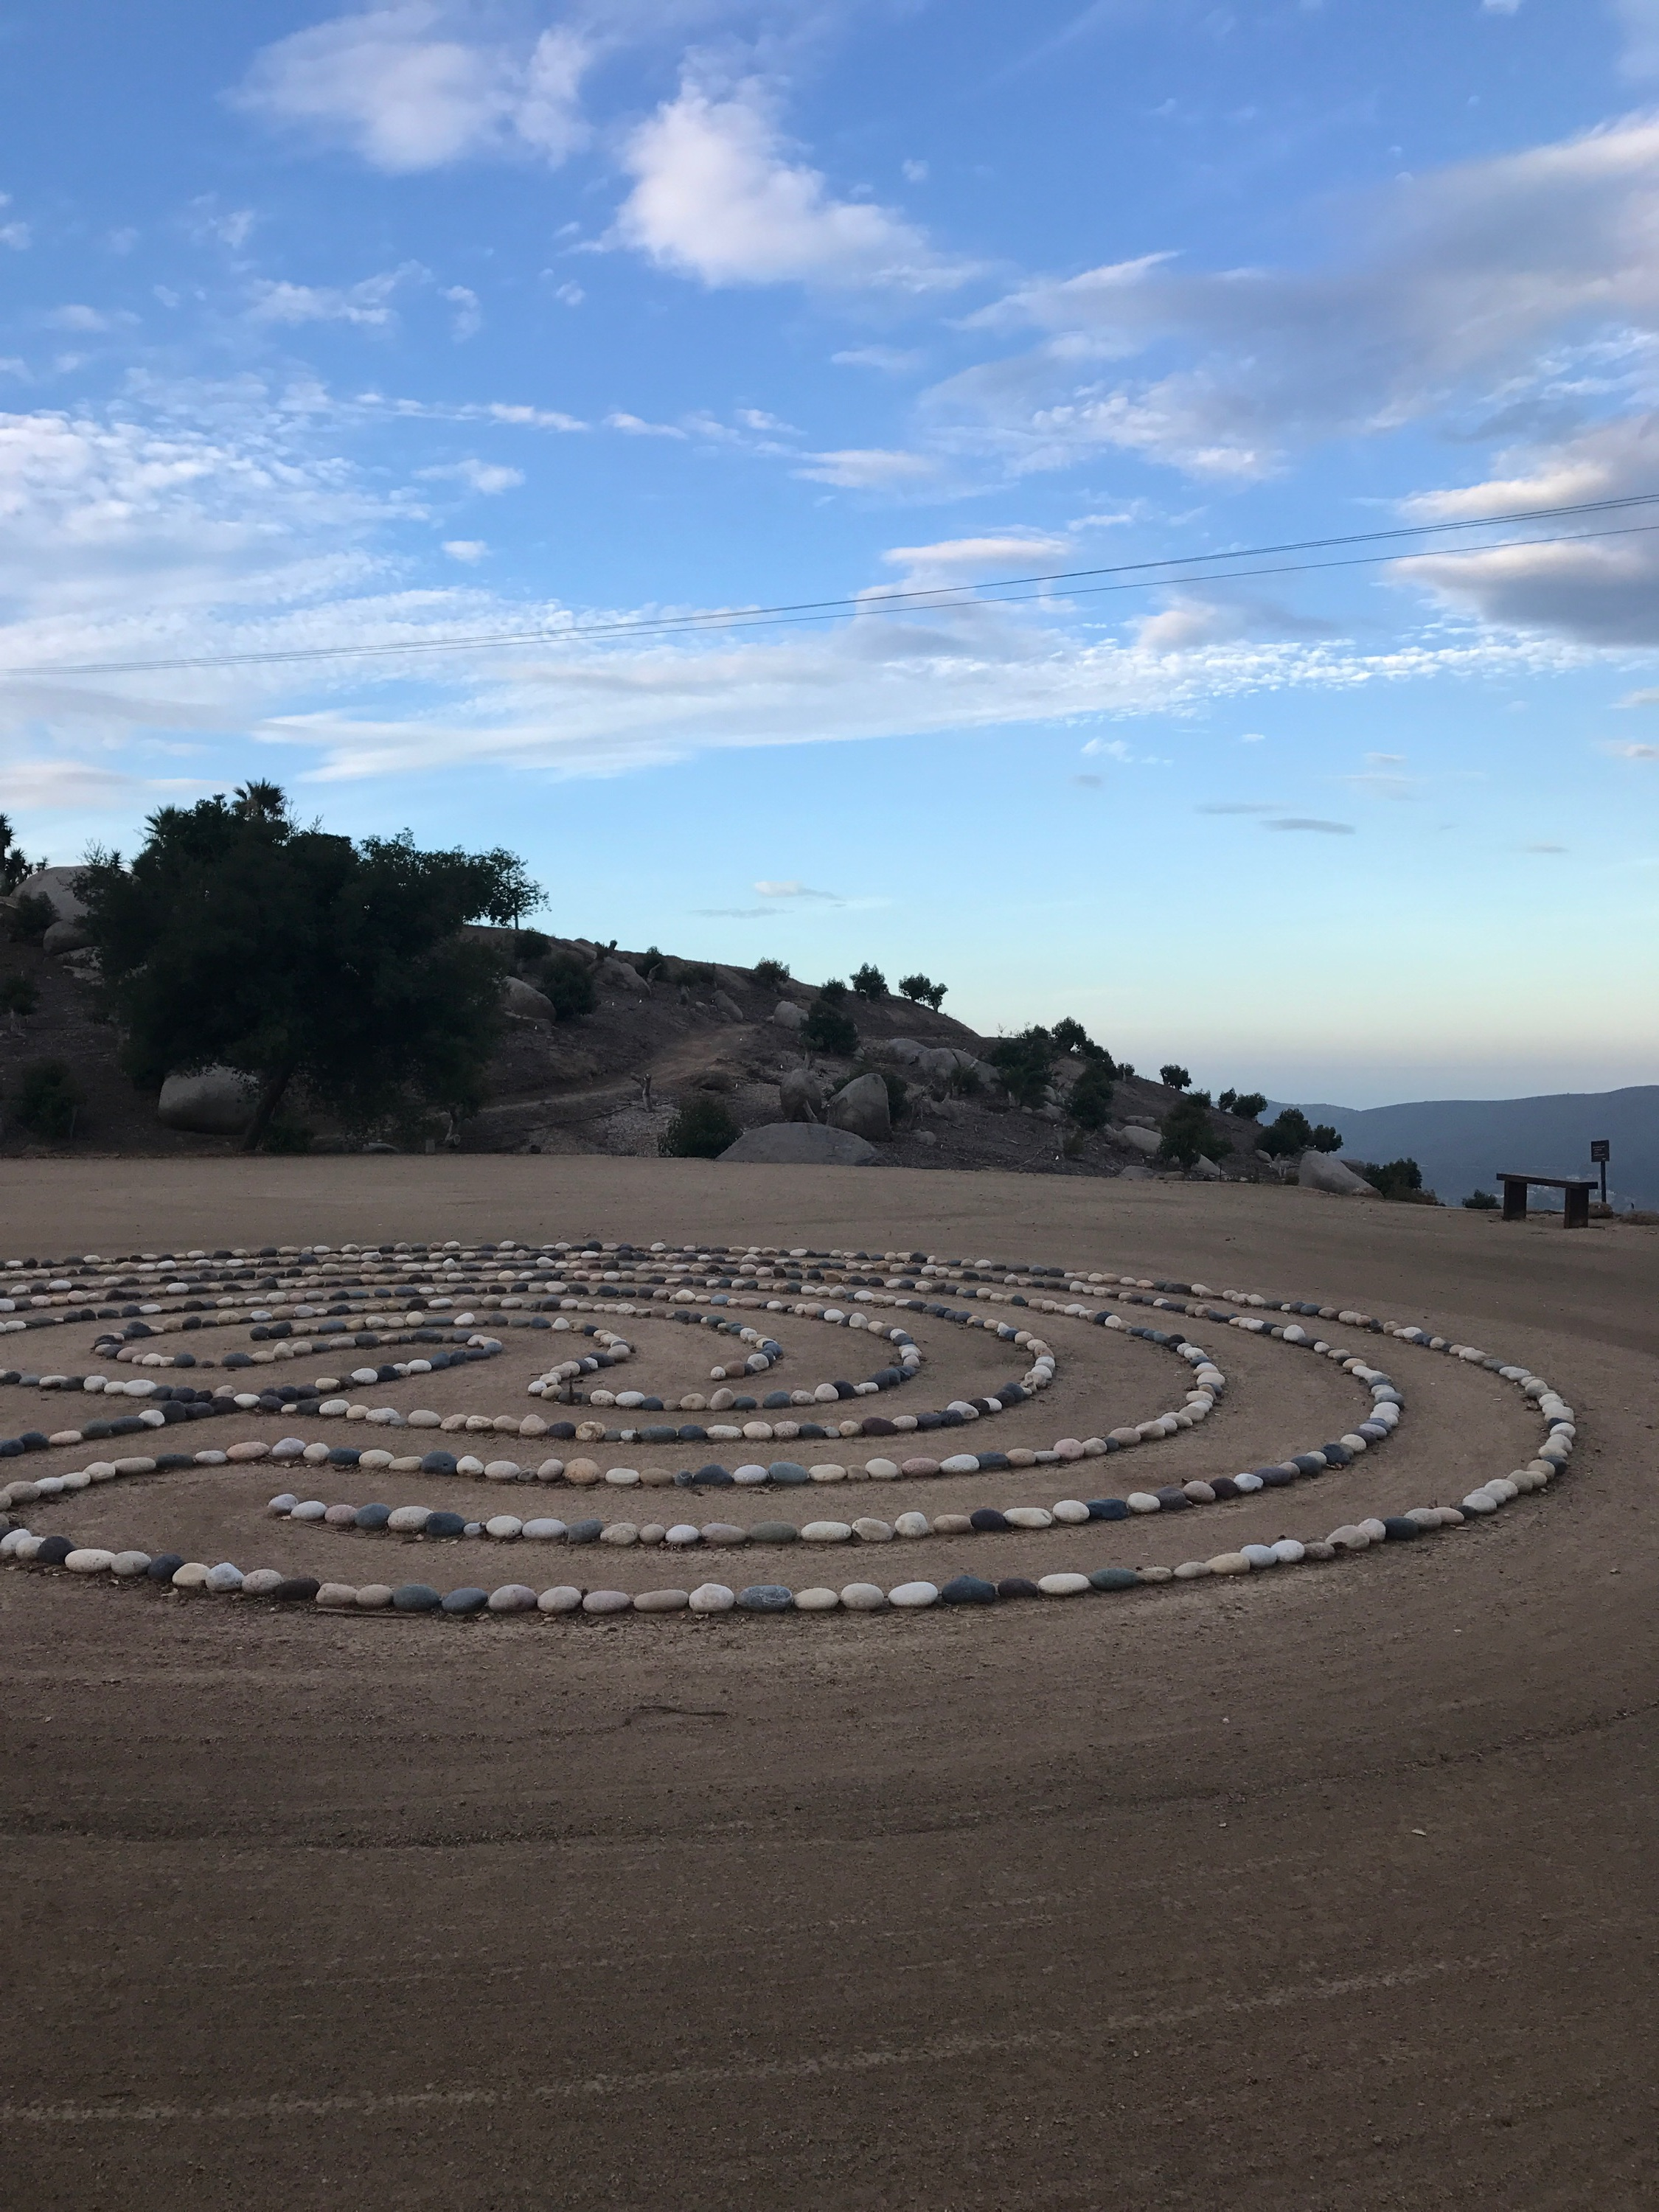 The labyrinth - one of the morning hike destinations.